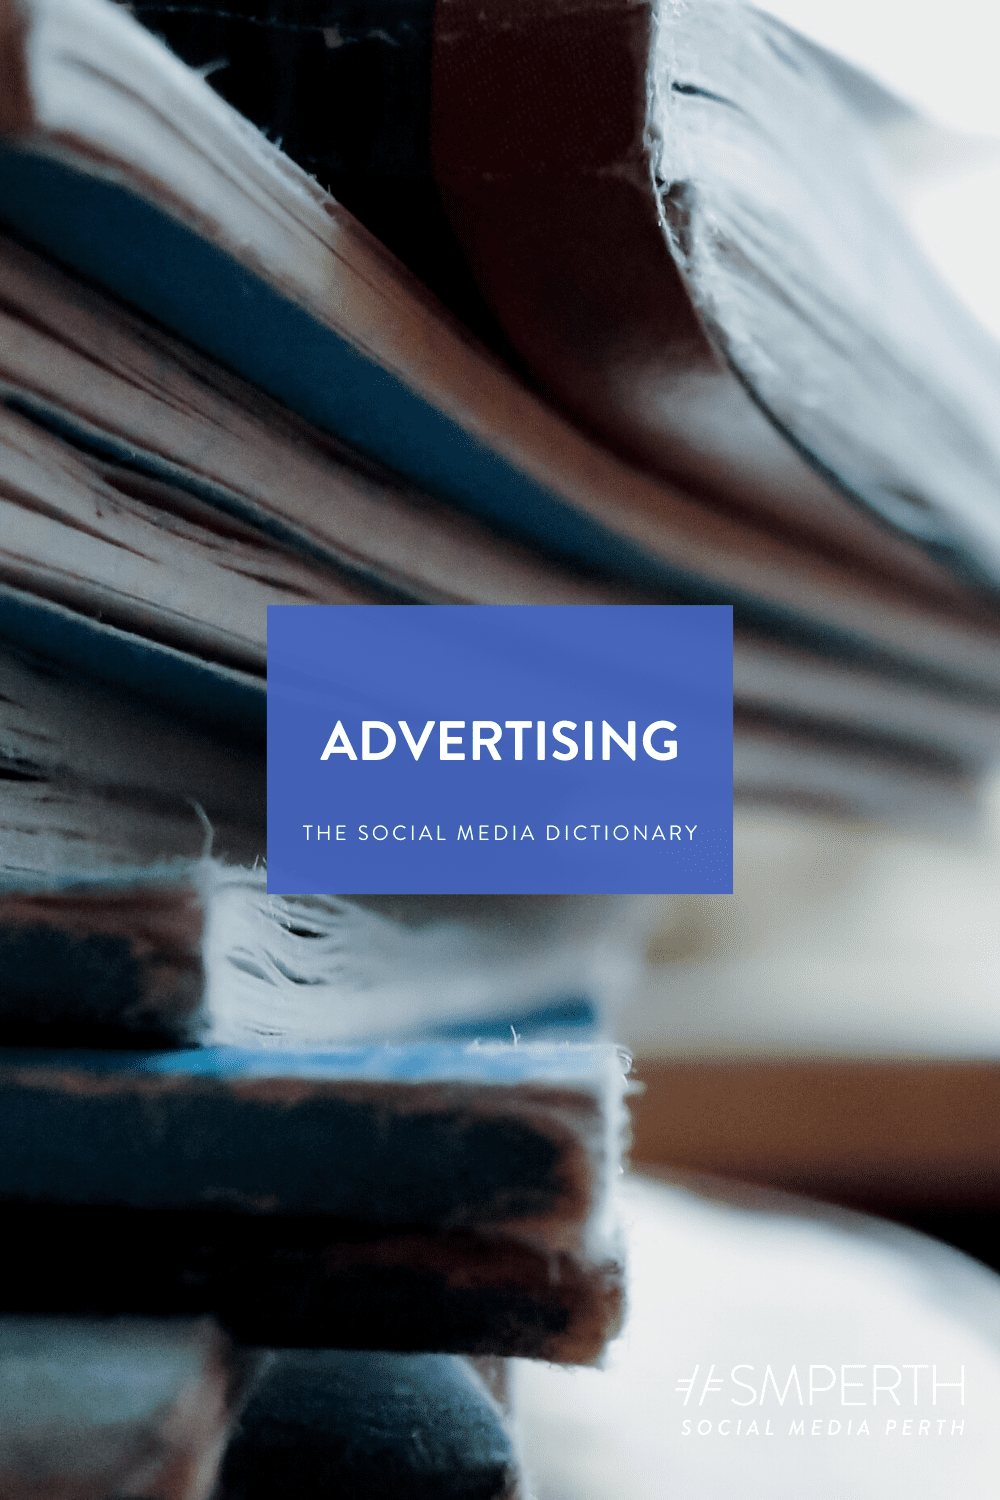 The Social Media Dictionary: The Advertising Edition